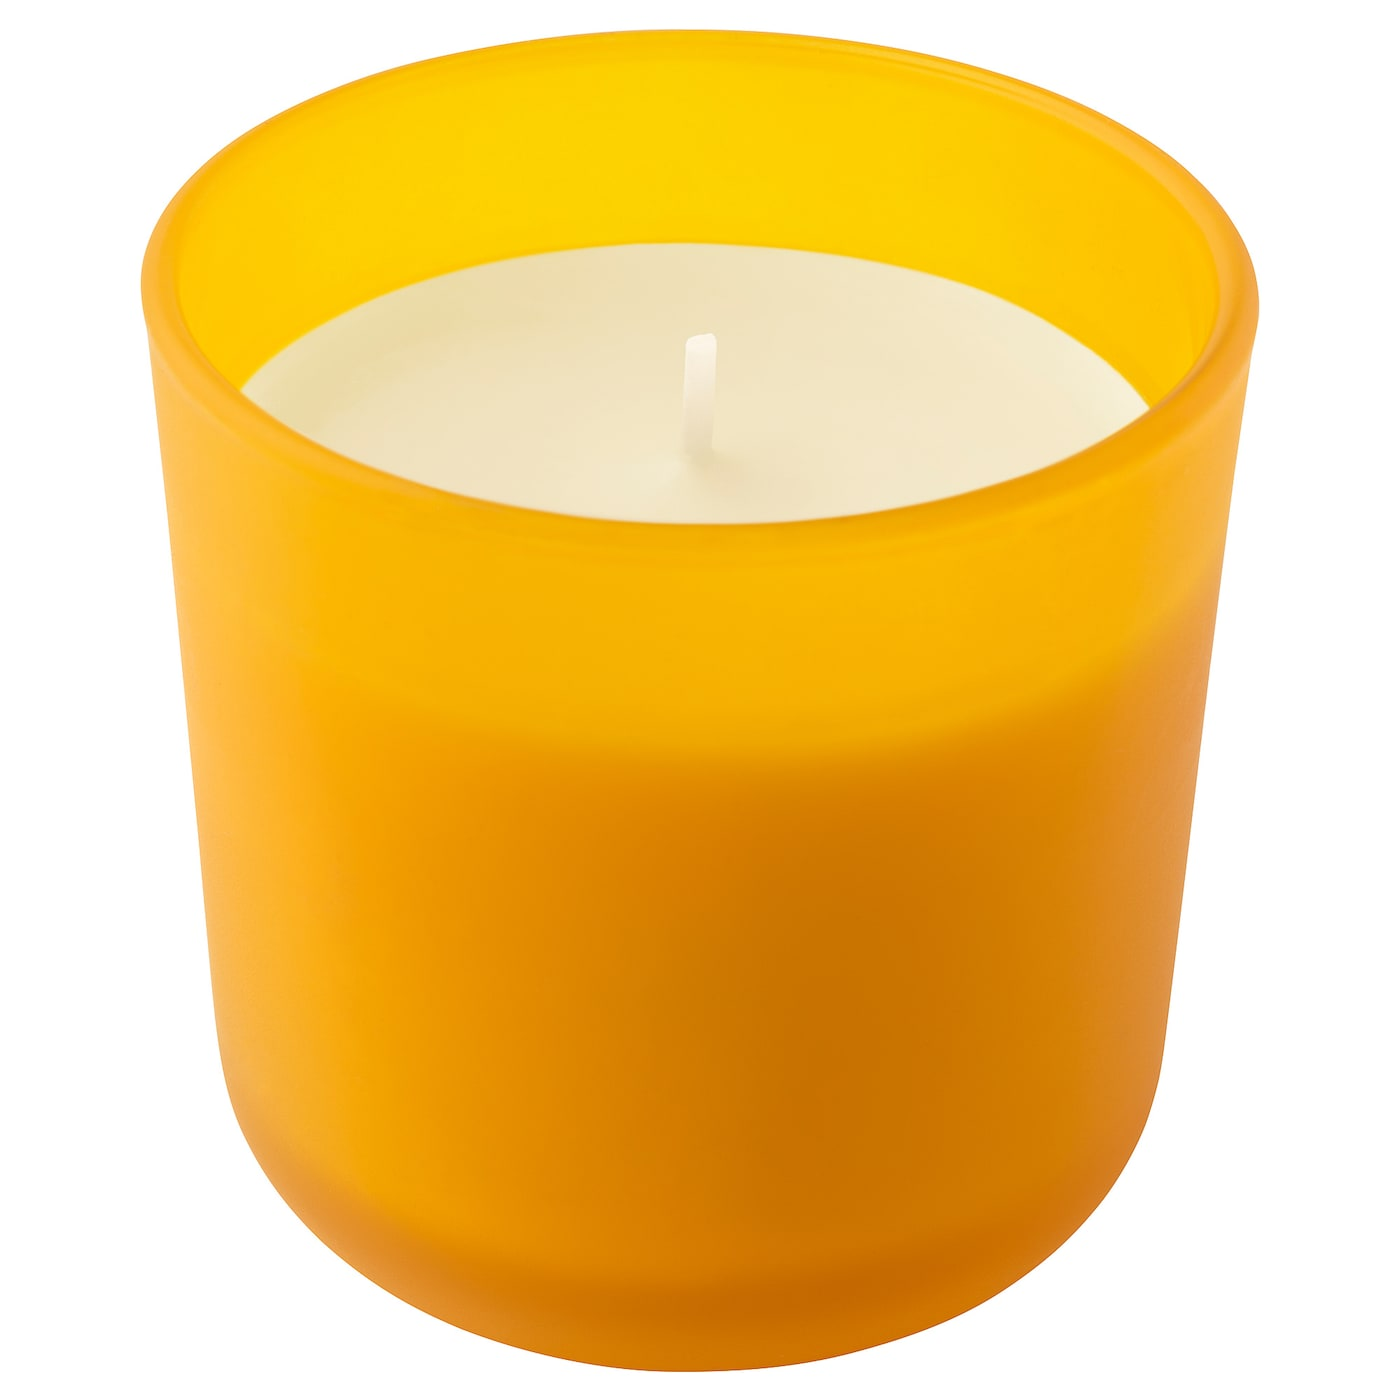 IKEA SOMMAR 2019 scented candle in glass A crisp scent of lemon.